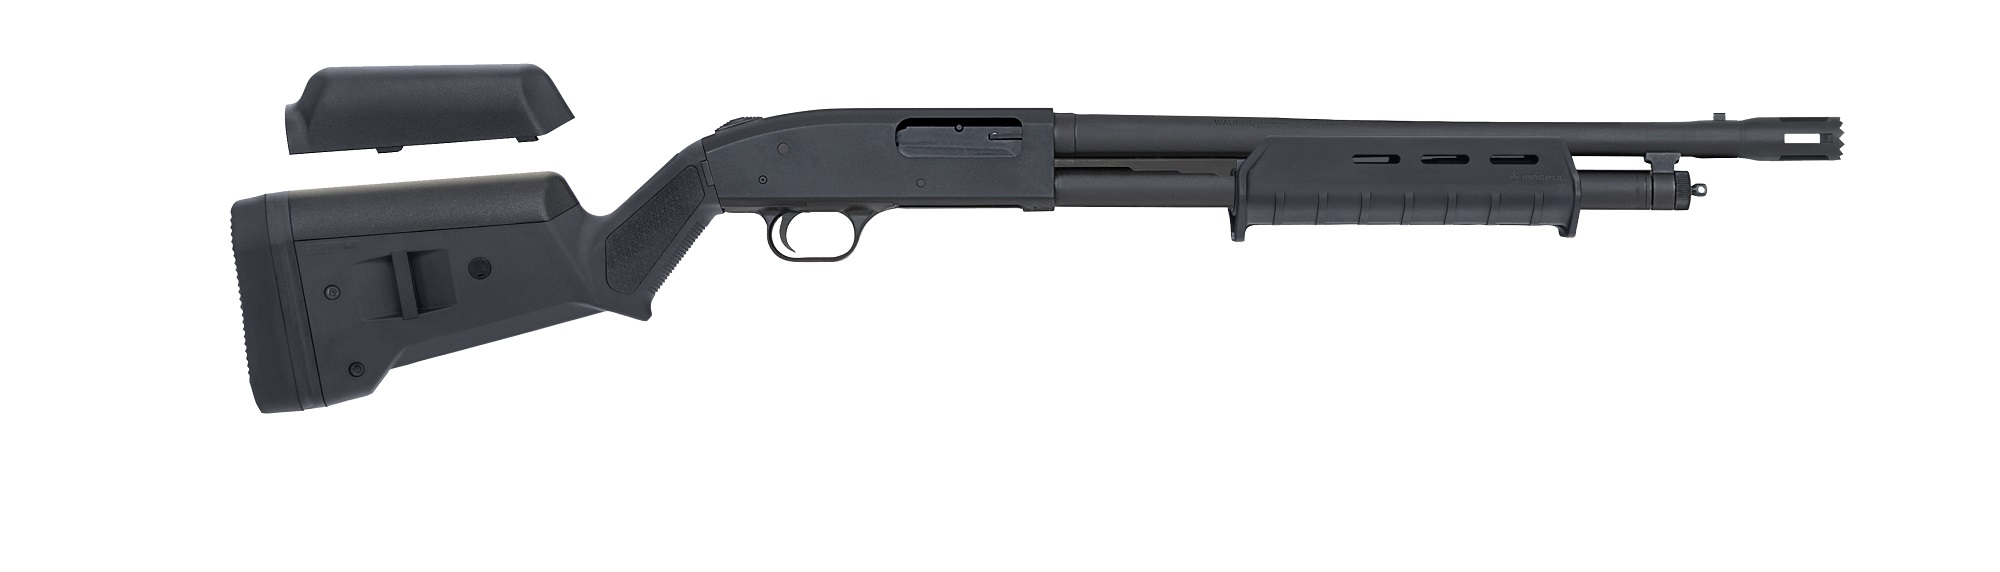 mossberg magpul series pump action shotguns mossberg sons rh all4shooters com Mossberg Shotgun Parts Diagram Mossberg Forearm Flashlight